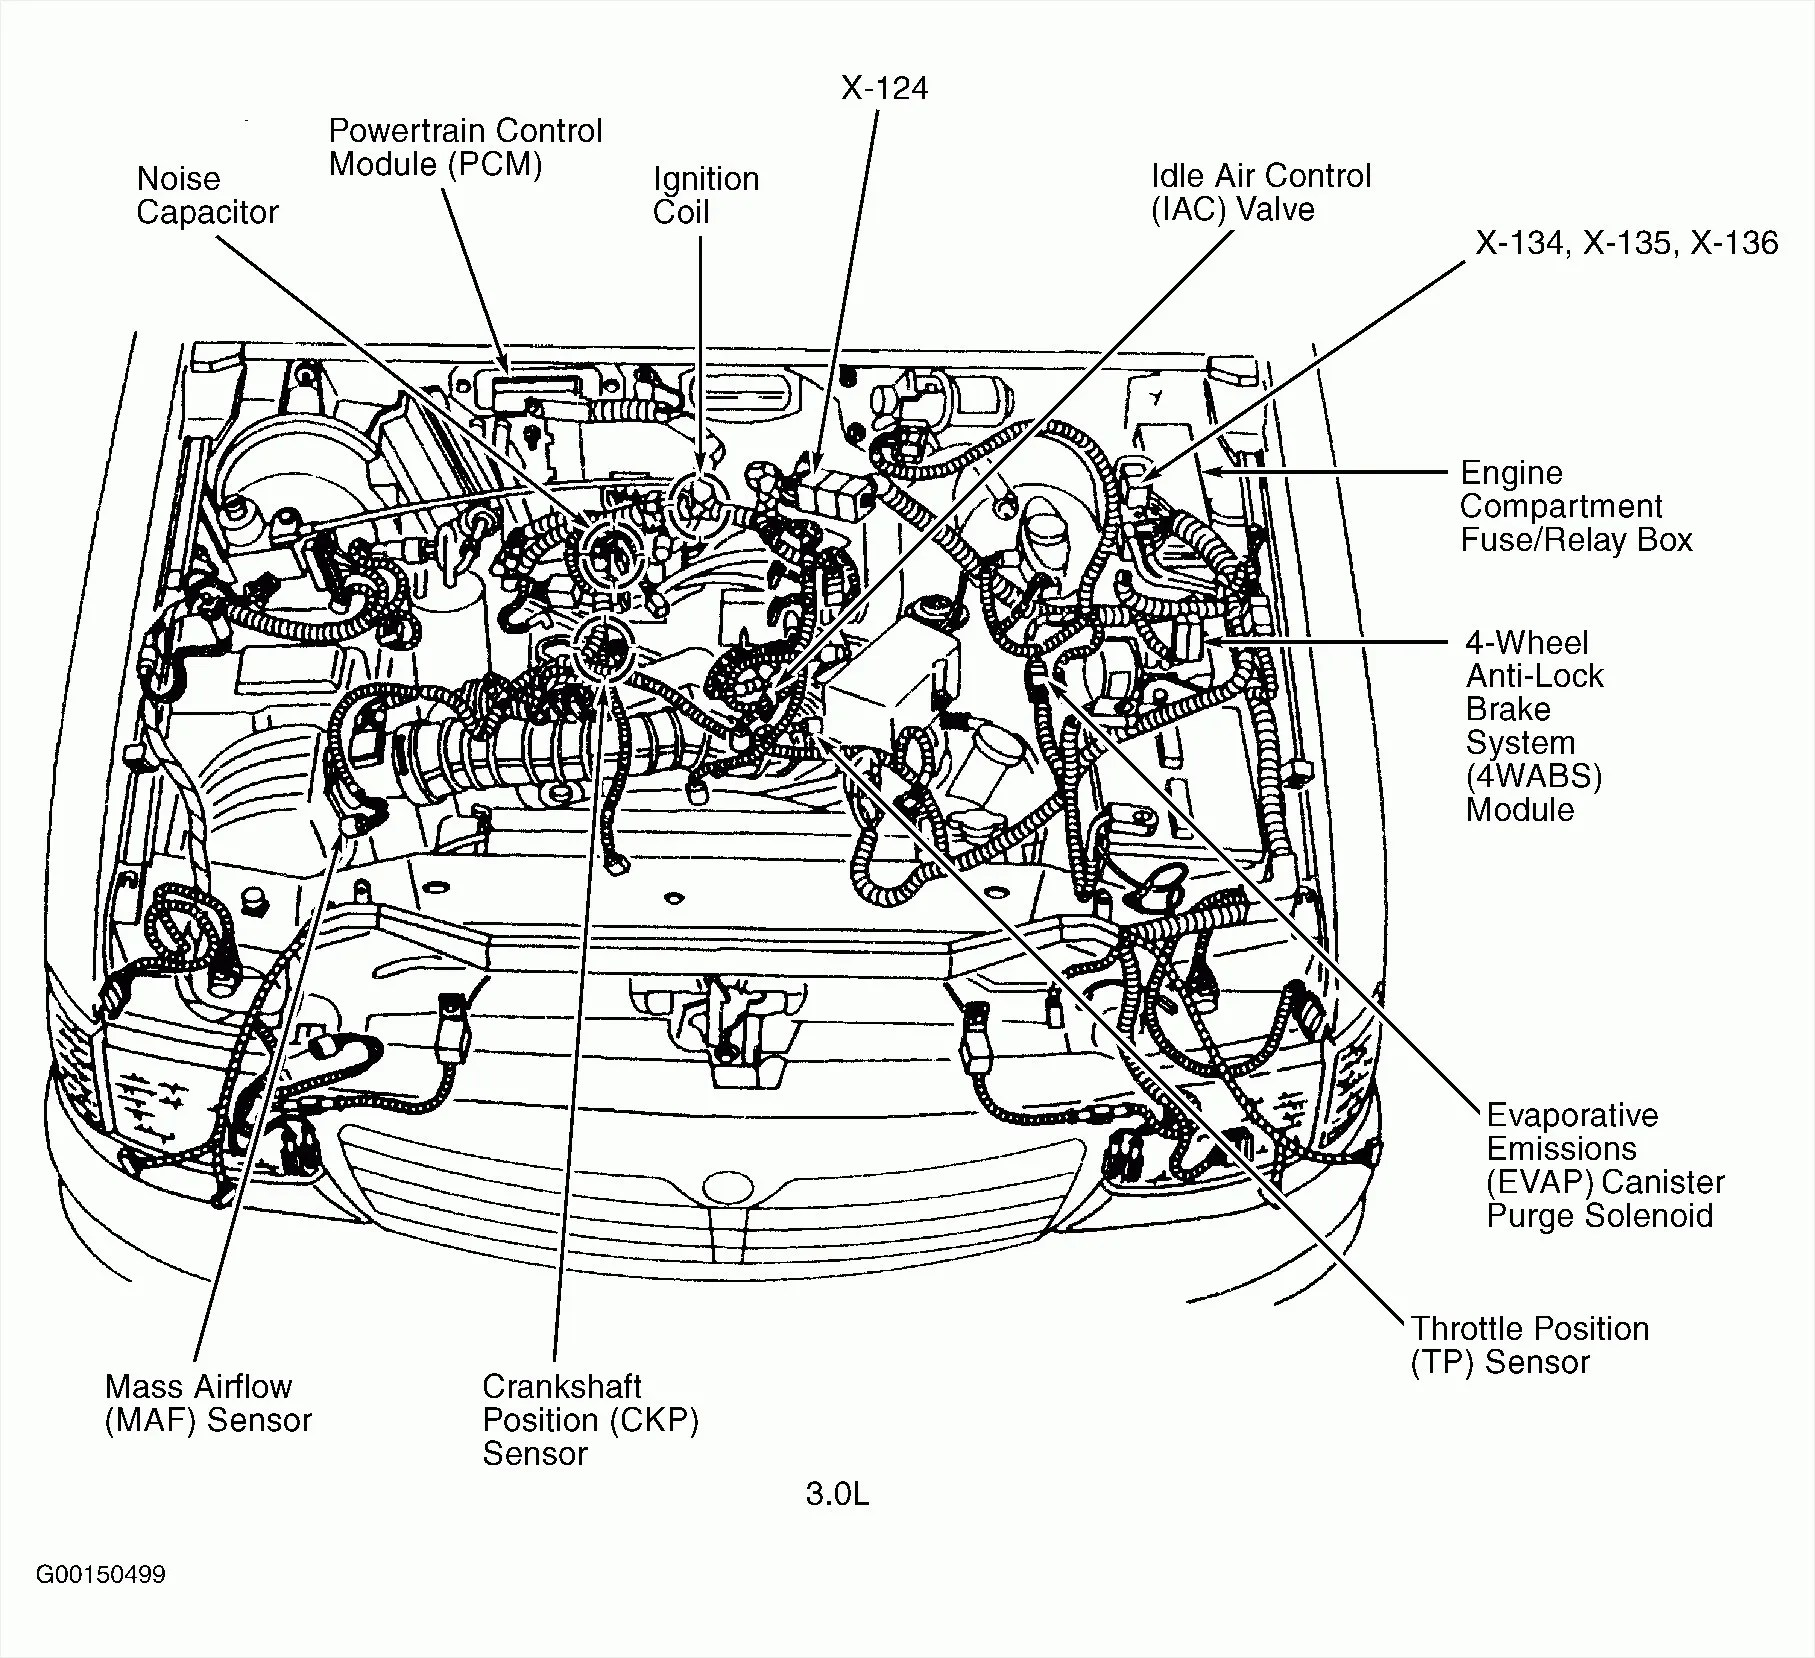 hight resolution of 2011 camaro engine diagram wiring diagram ame 2011 camaro engine diagram 2011 camaro engine diagram